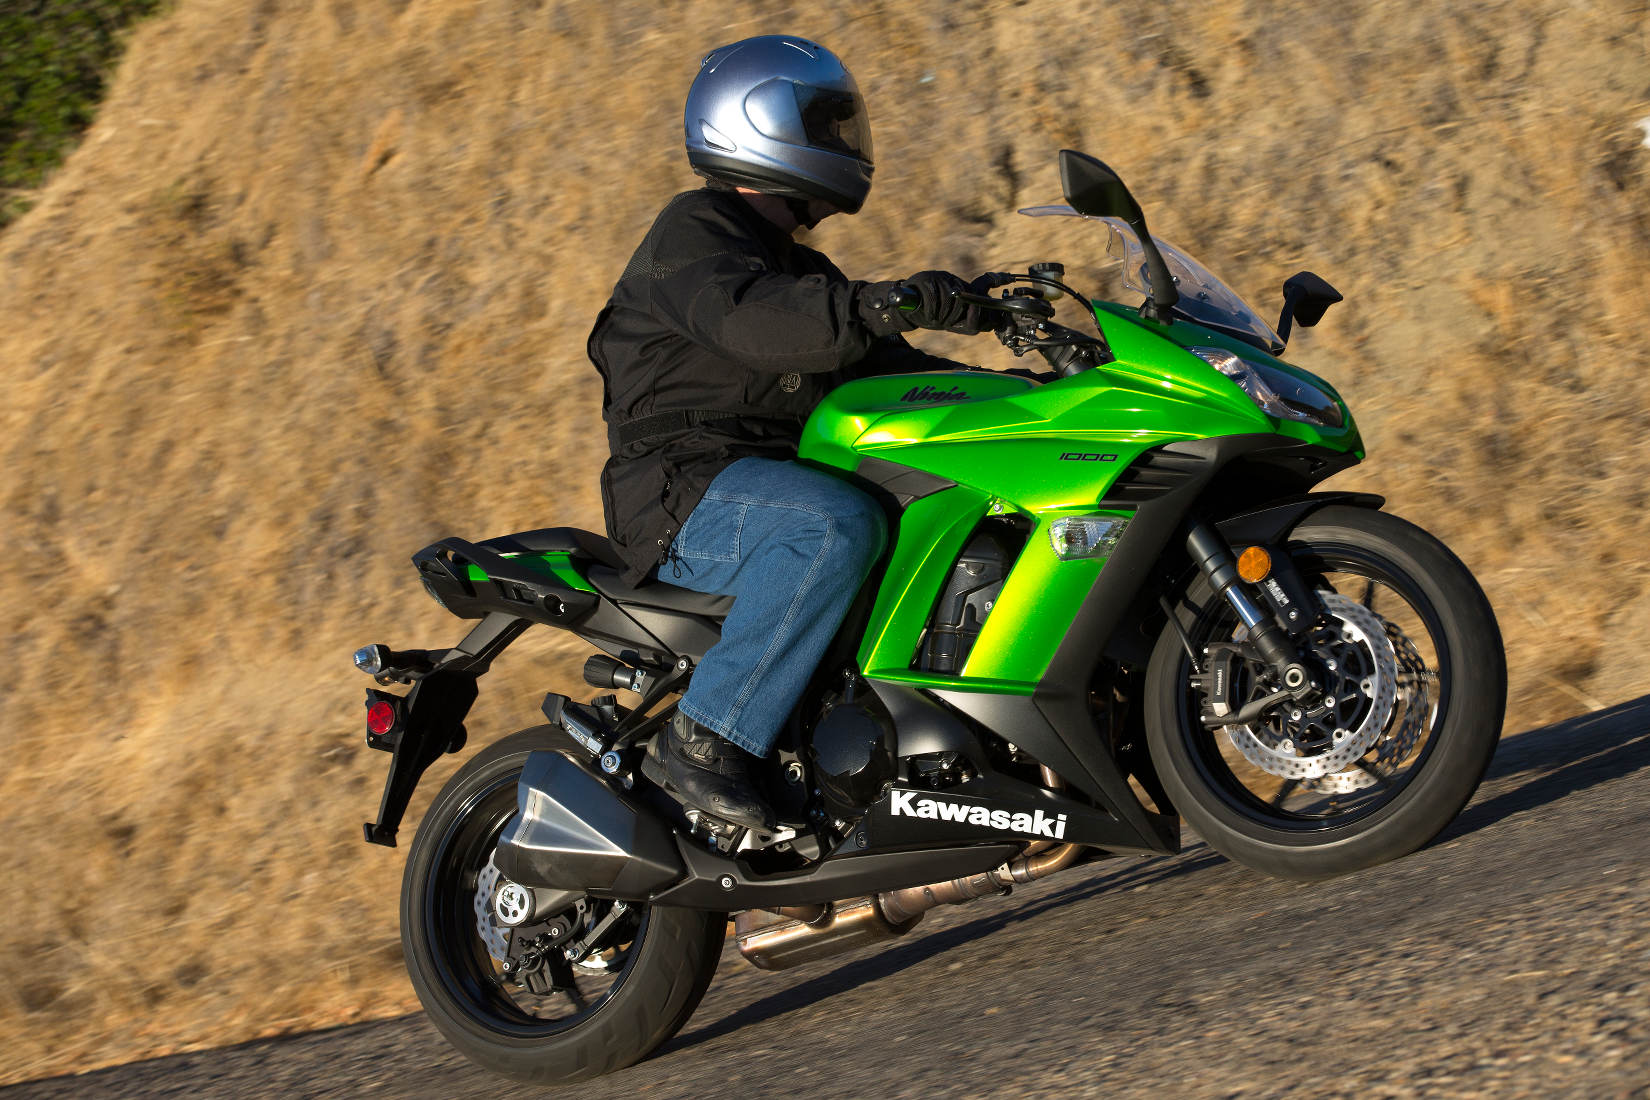 2014 Kawasaki Ninja 1000 Abs Md First Ride Part 1